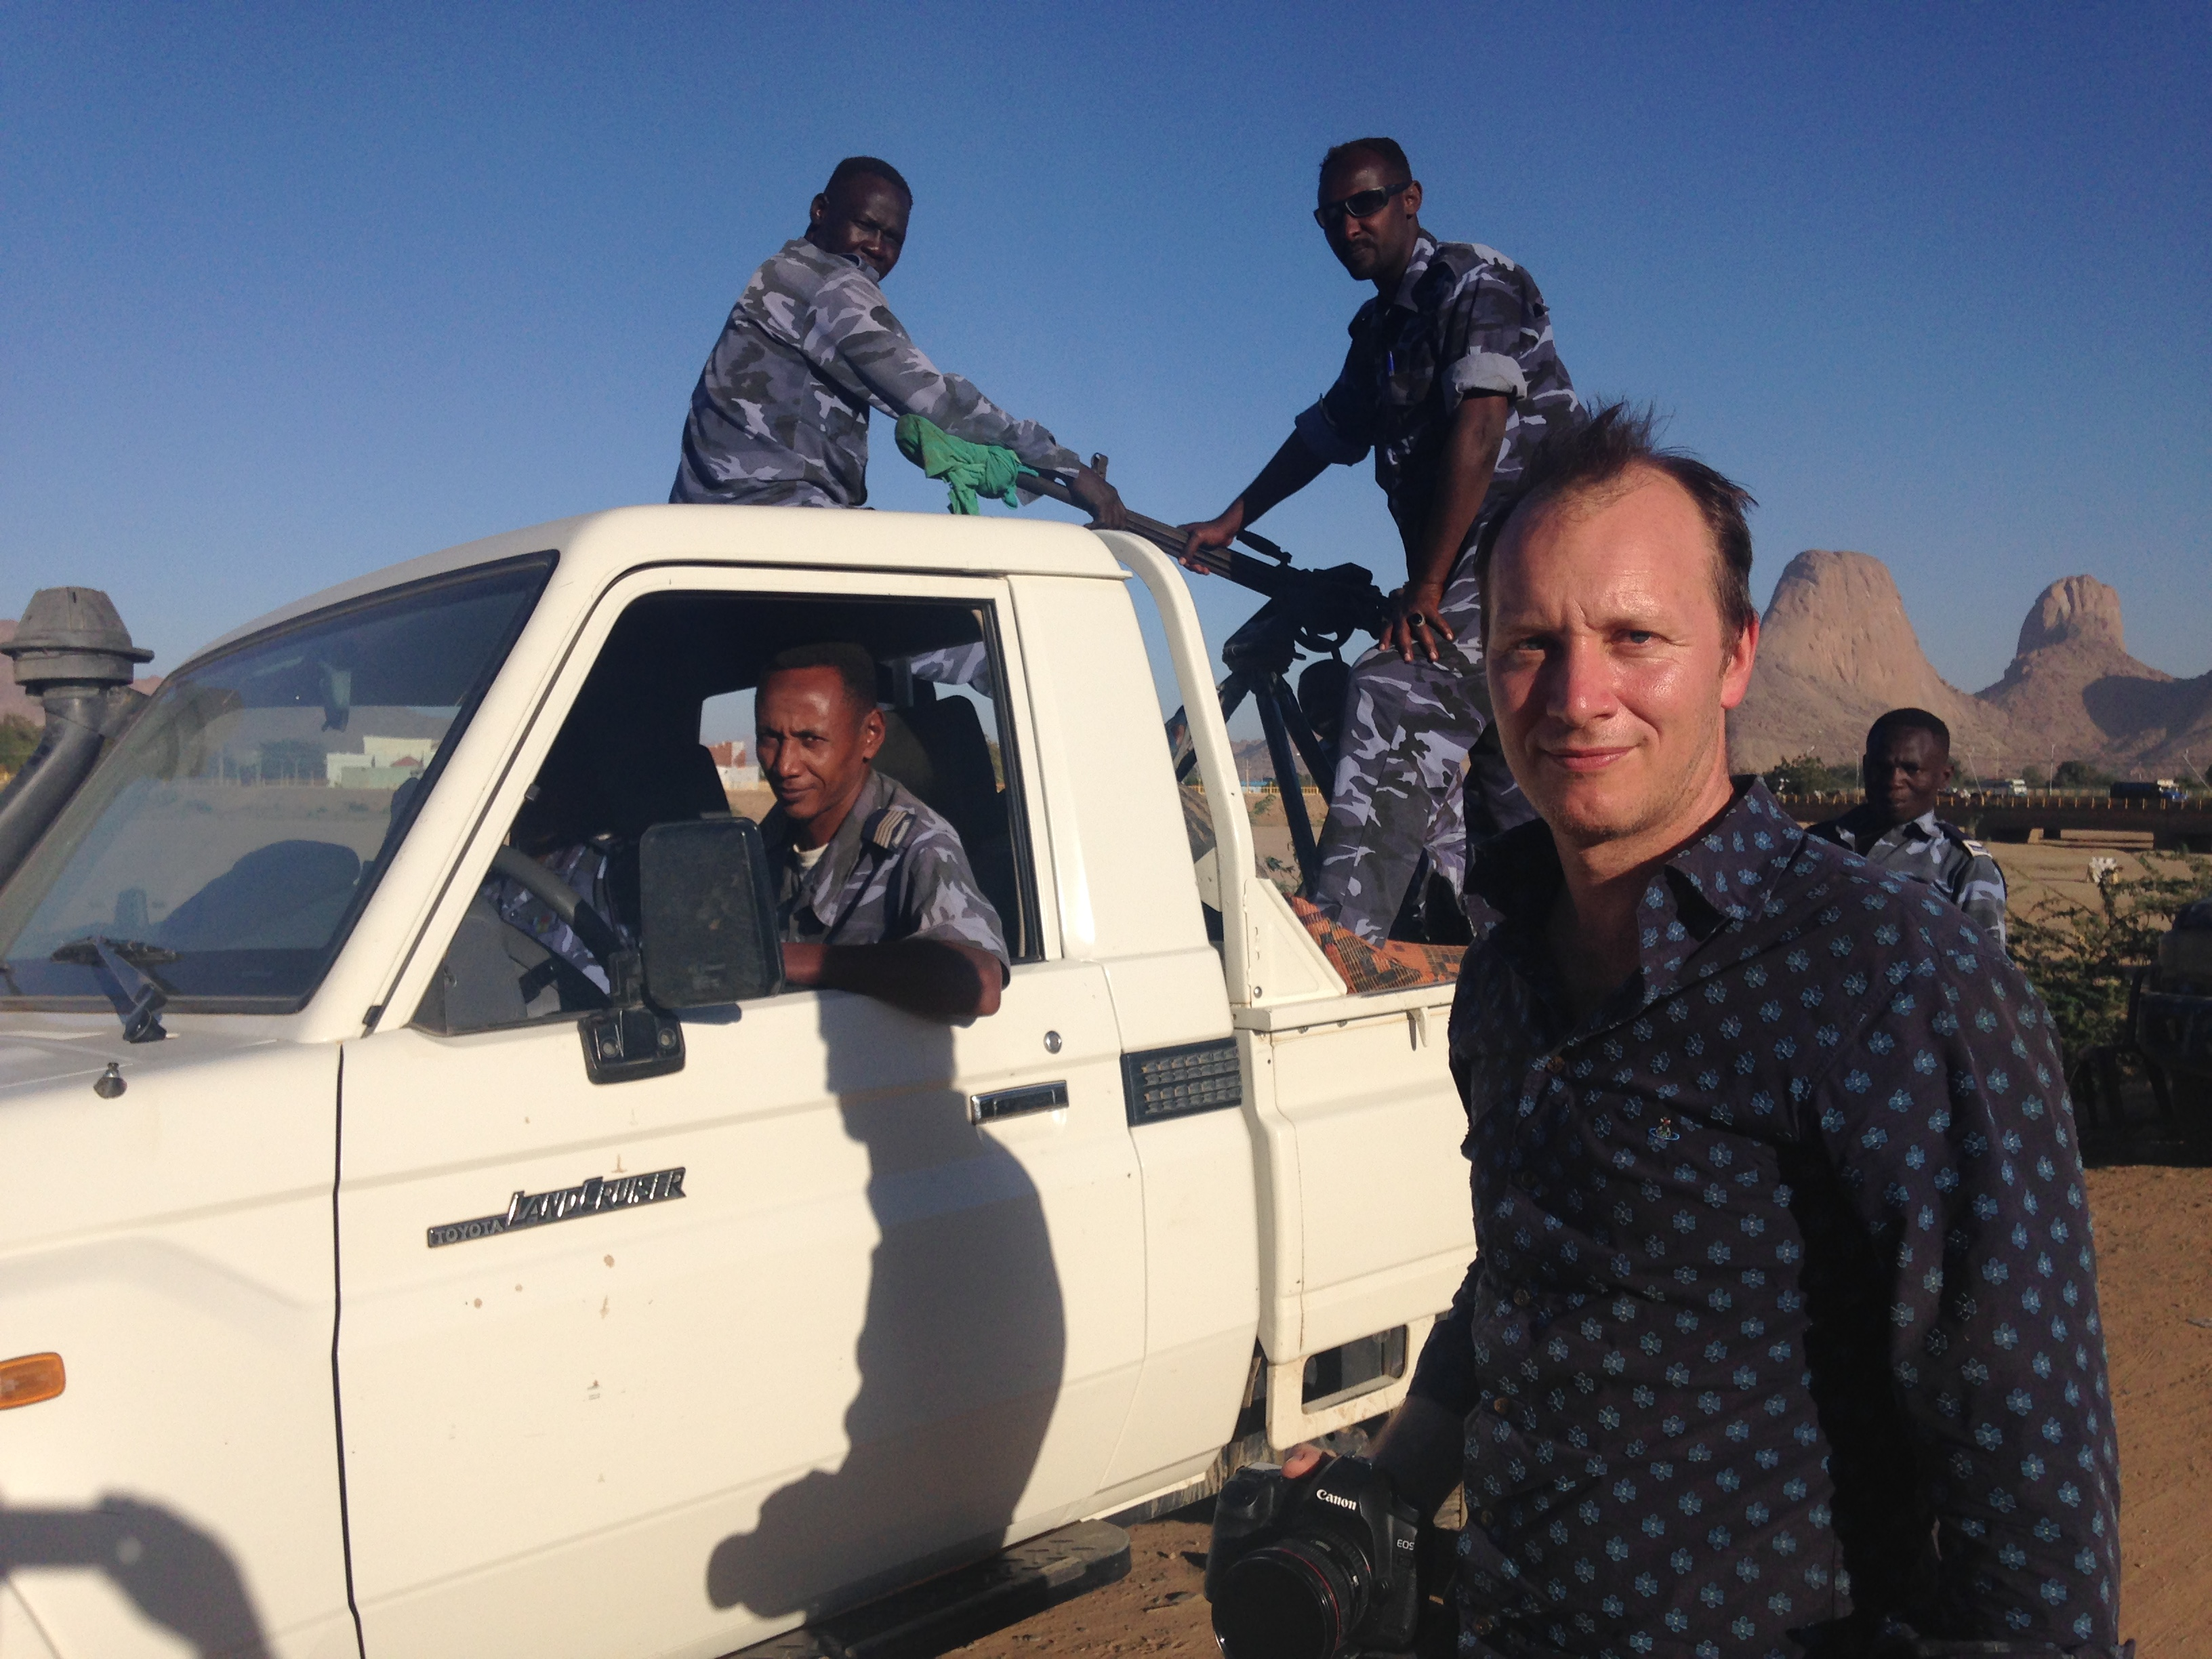 Paul and the Sudanese patrol